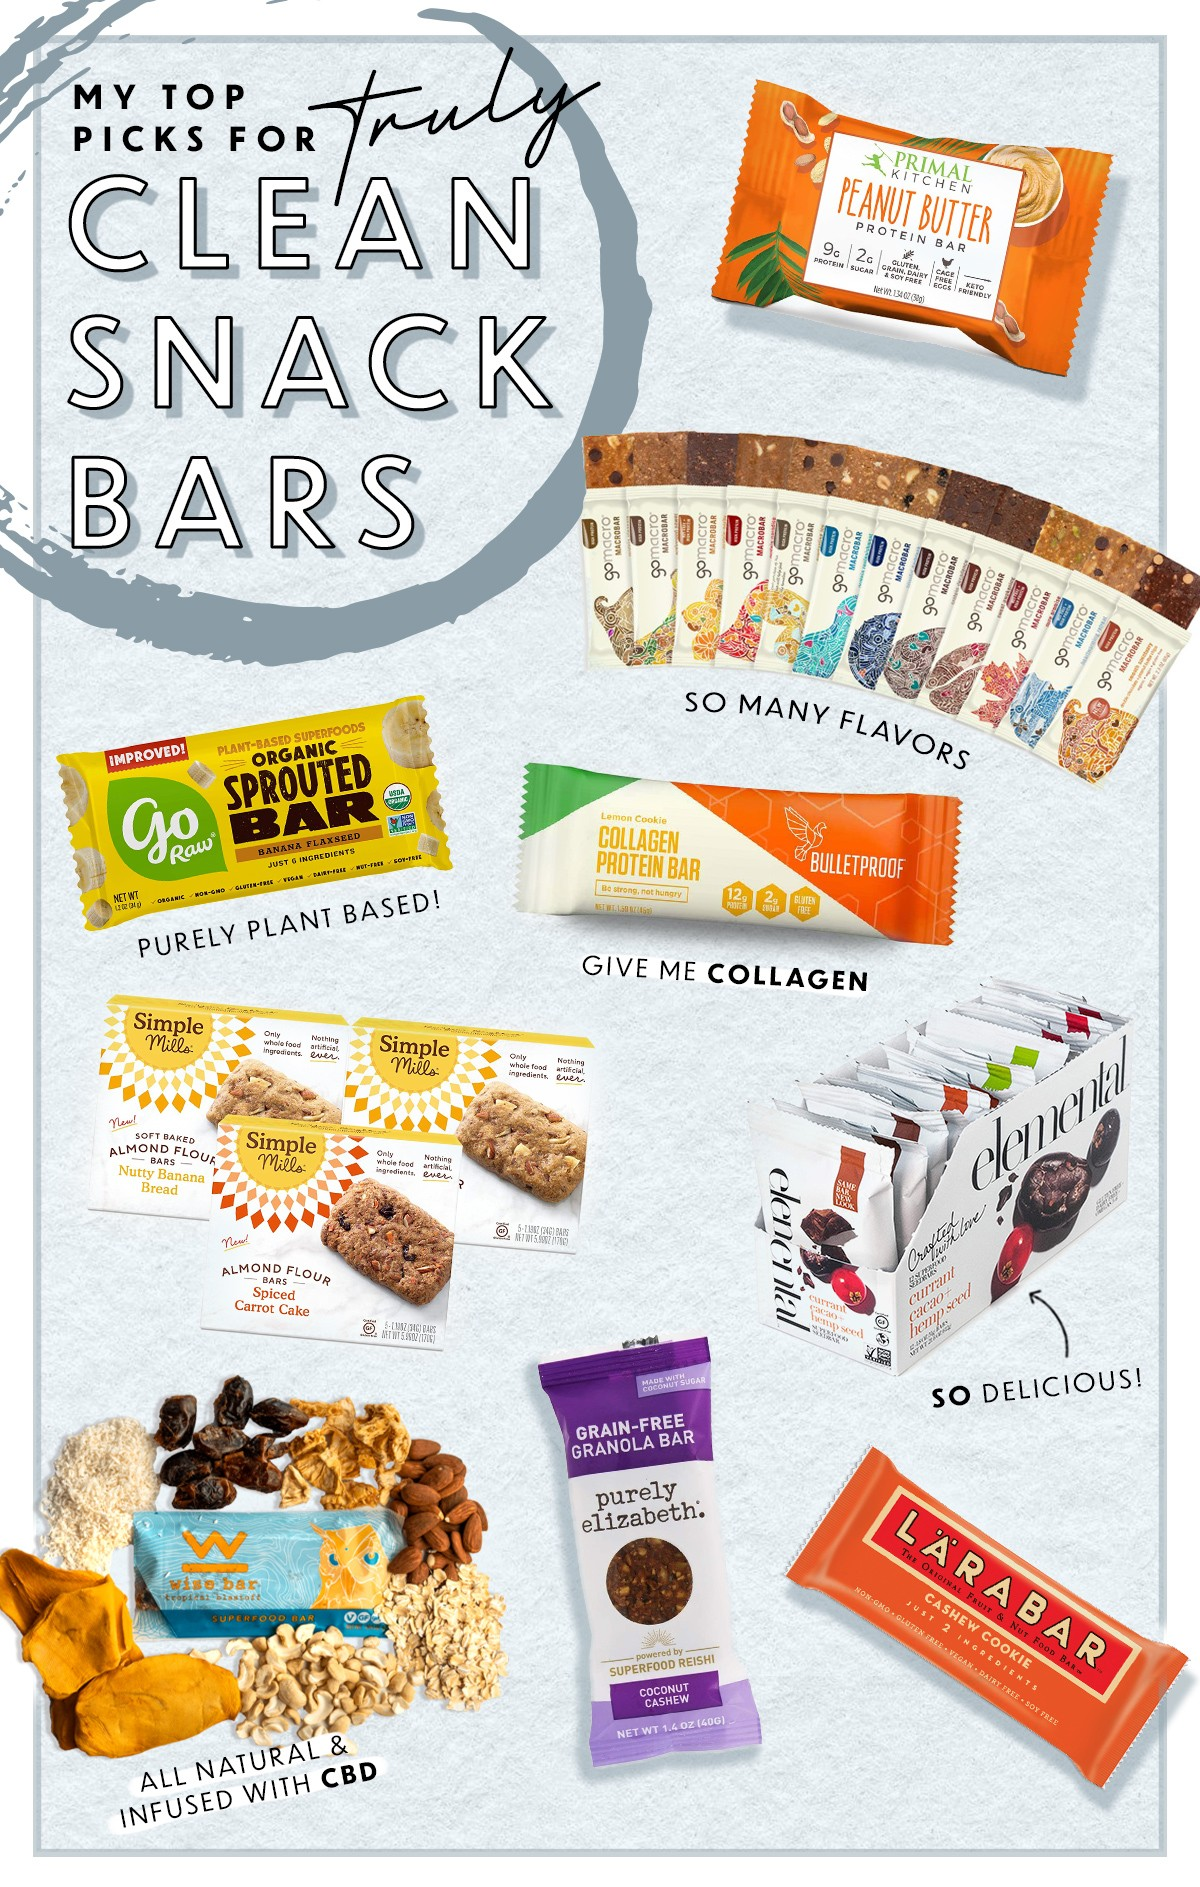 img?v=2 - My Top Picks for Truly Clean Snack Bars